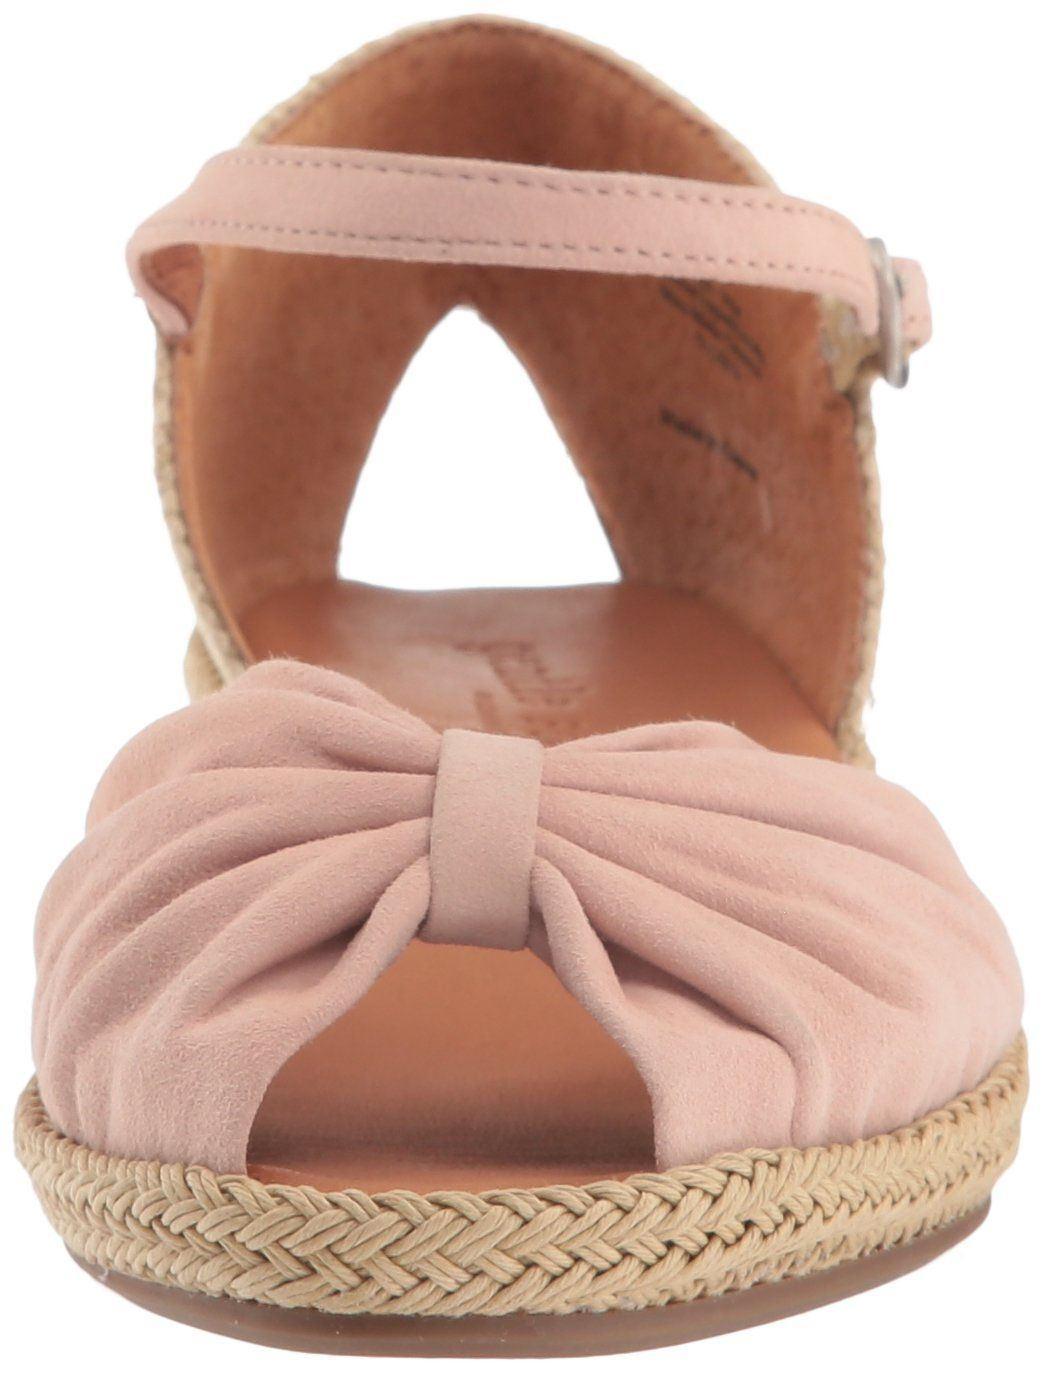 0097097af42 Gentle Souls by Kenneth Cole Womens Lucille Low Wedge Espadrille ...